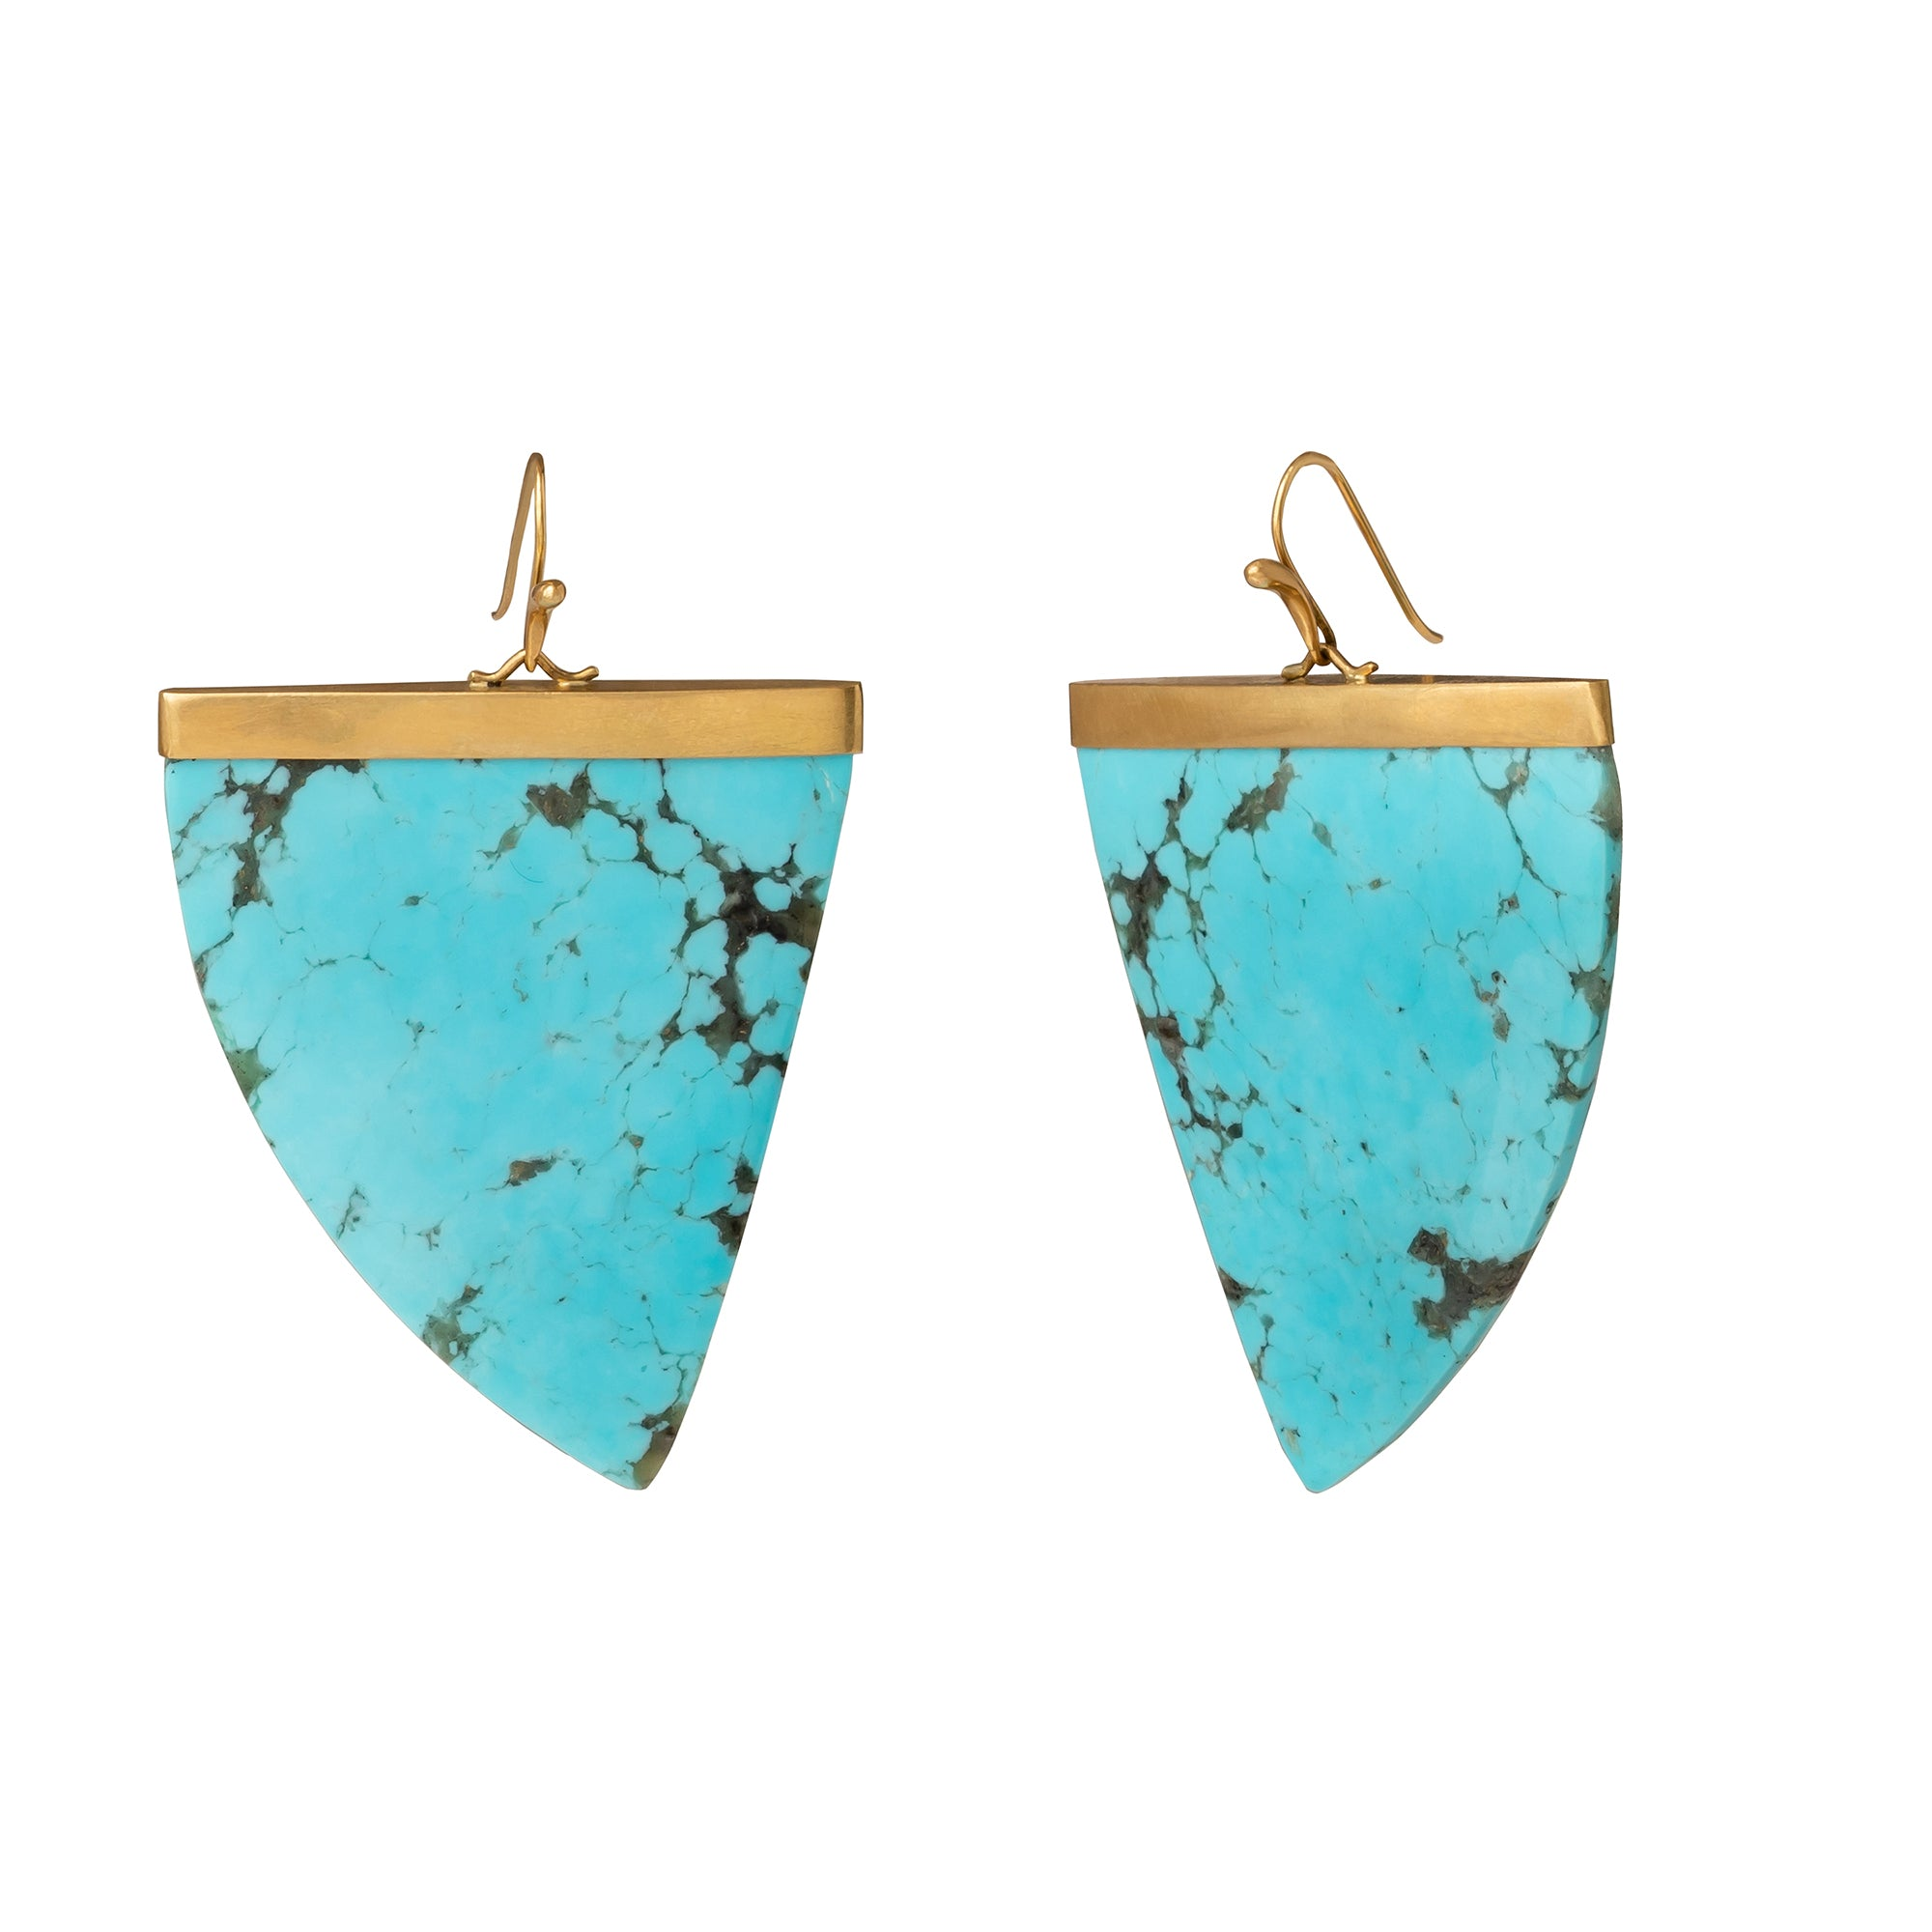 Large One-Of-A-Kind Turquoise Amazon Claws - Annette Ferdinansen - Earrings | Broken English Jewelry